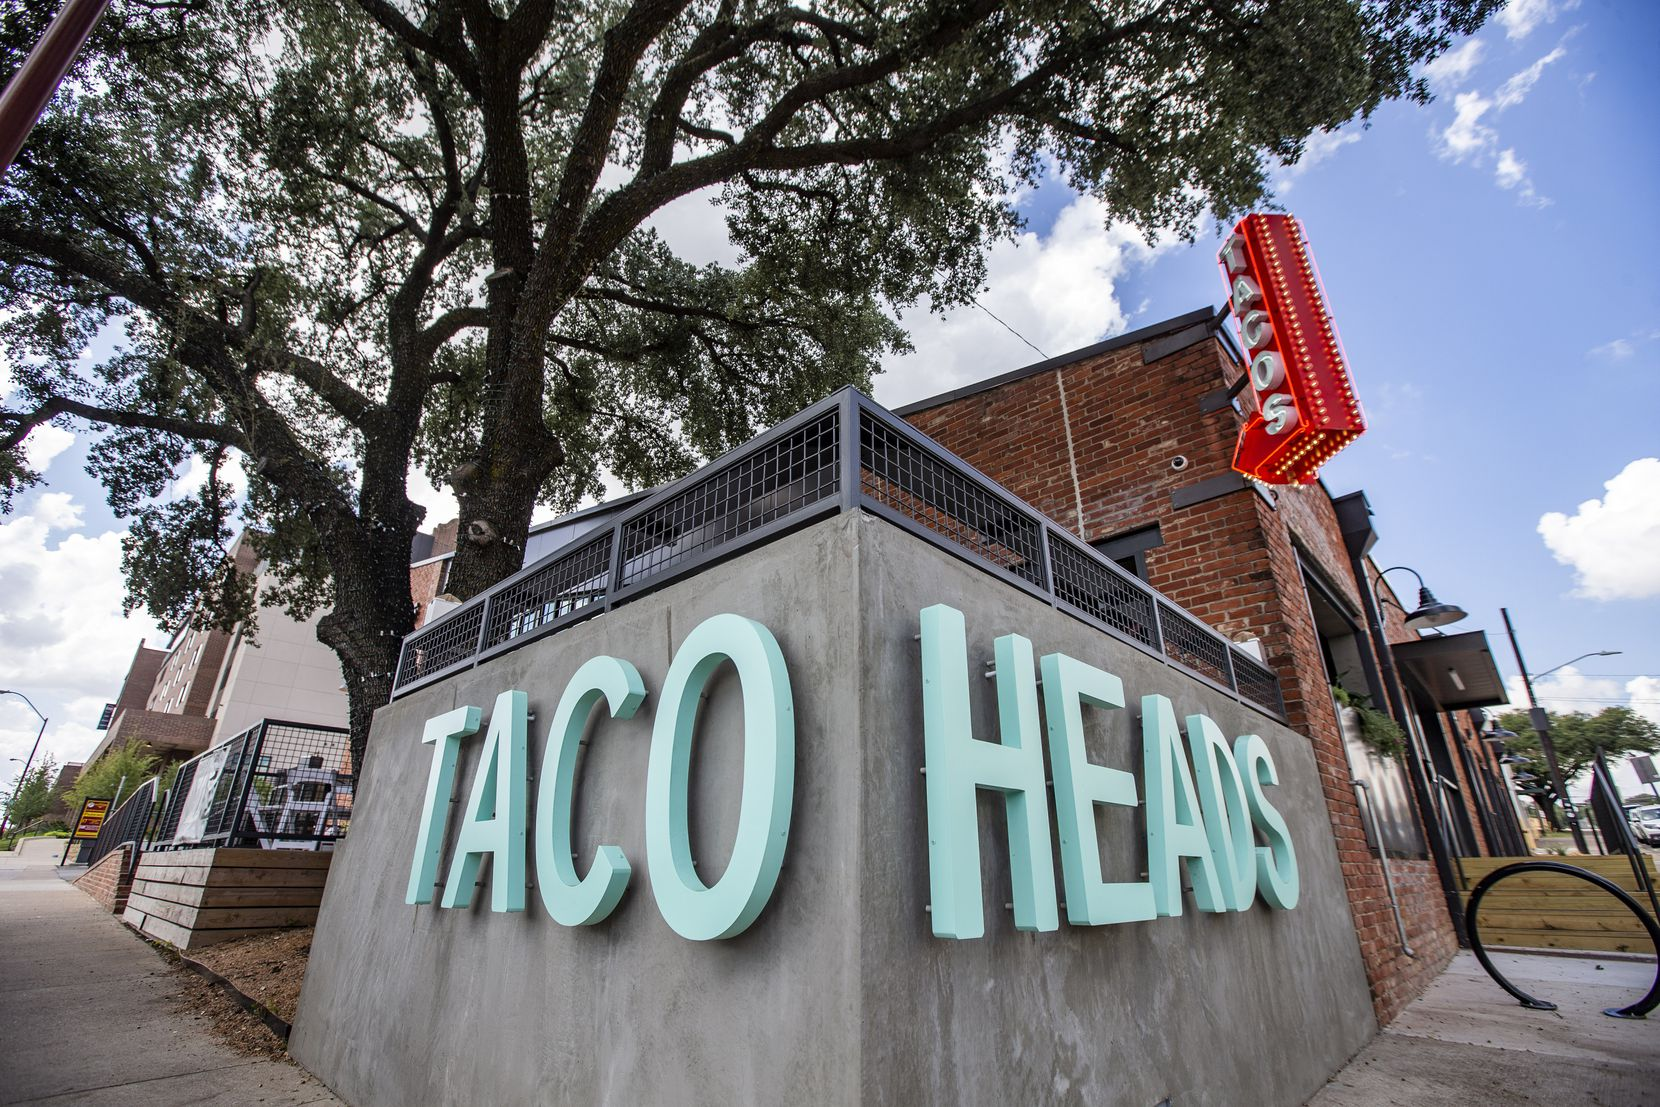 The front of Taco Heads in Fort Worth